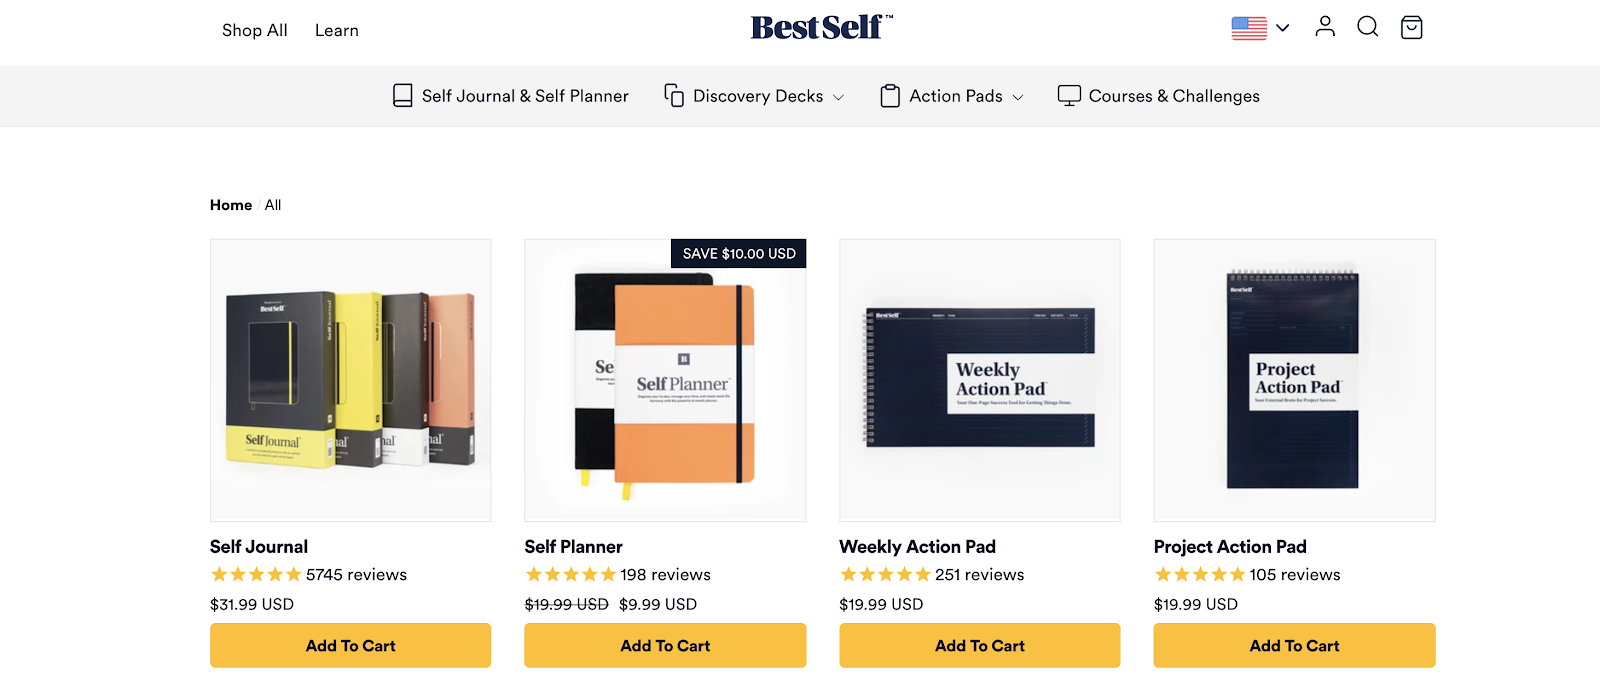 BestSelf eCommerce Website Example (and Blog)